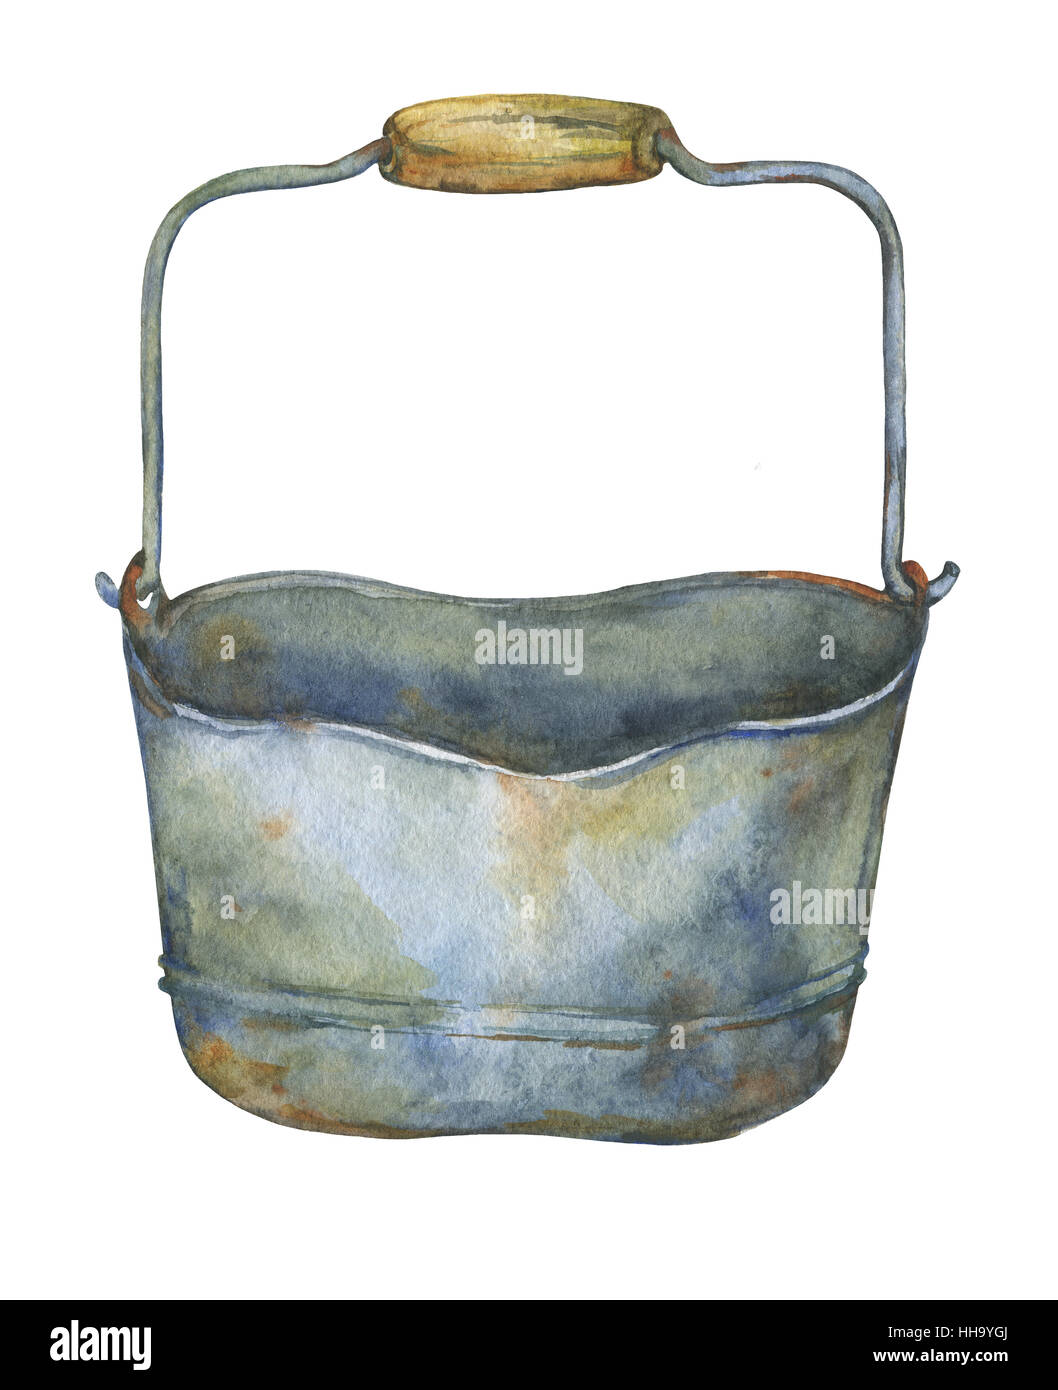 Gardening tools rusty galvanized bucket. Hand drawn watercolor painting on white background. - Stock Image